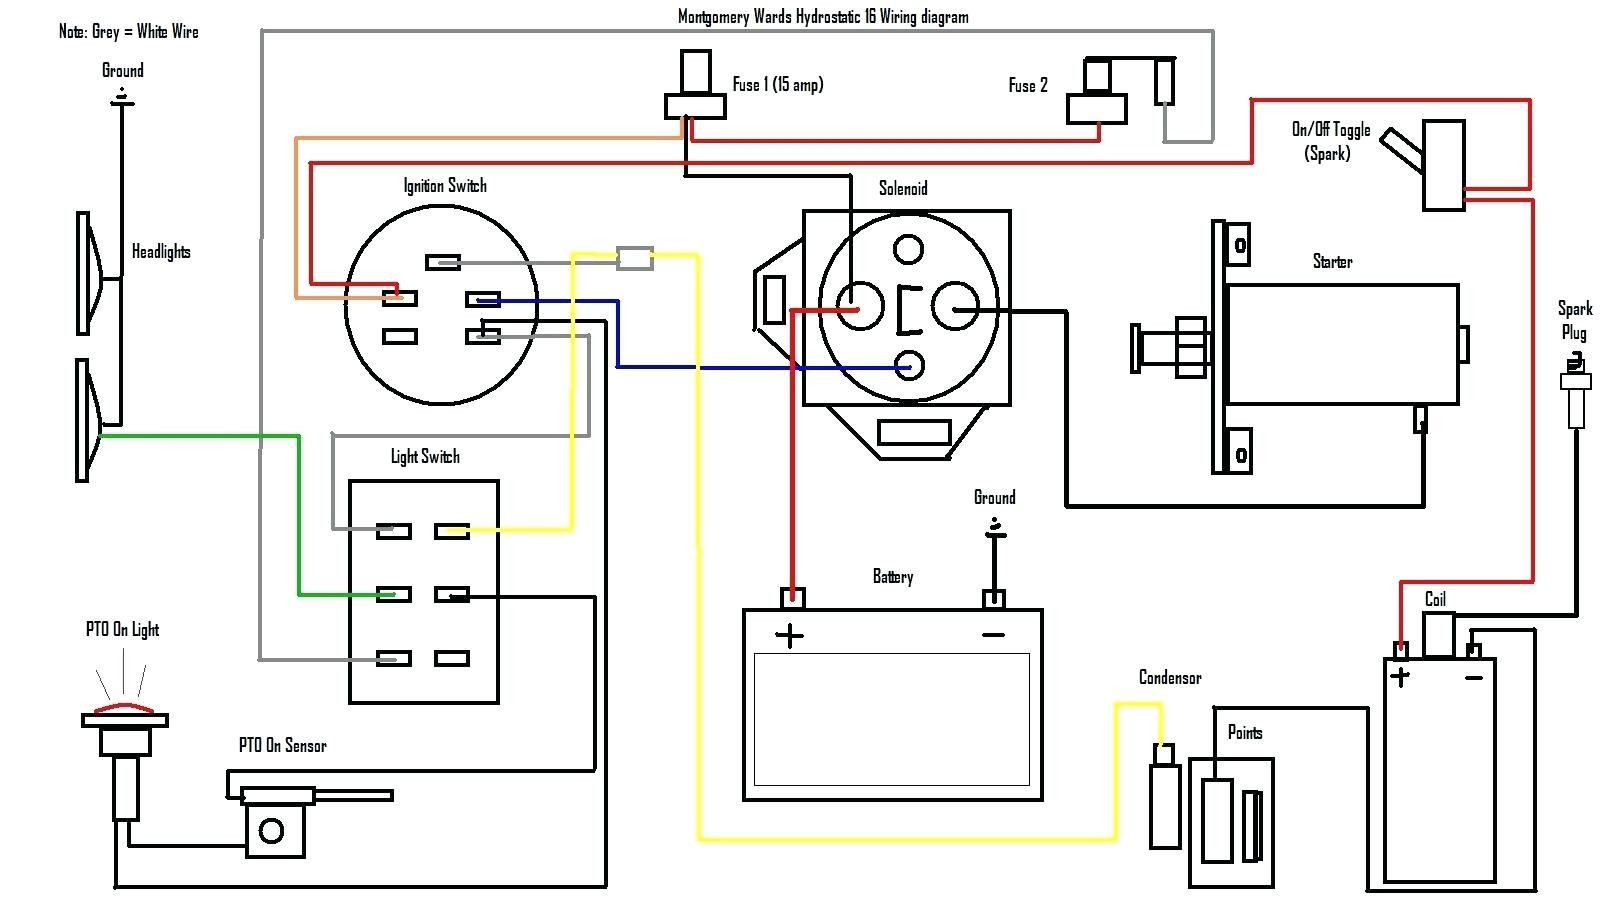 15 Hp Briggs And Stratton Wiring Diagram | Wiring Library - Briggs And Stratton V Twin Wiring Diagram